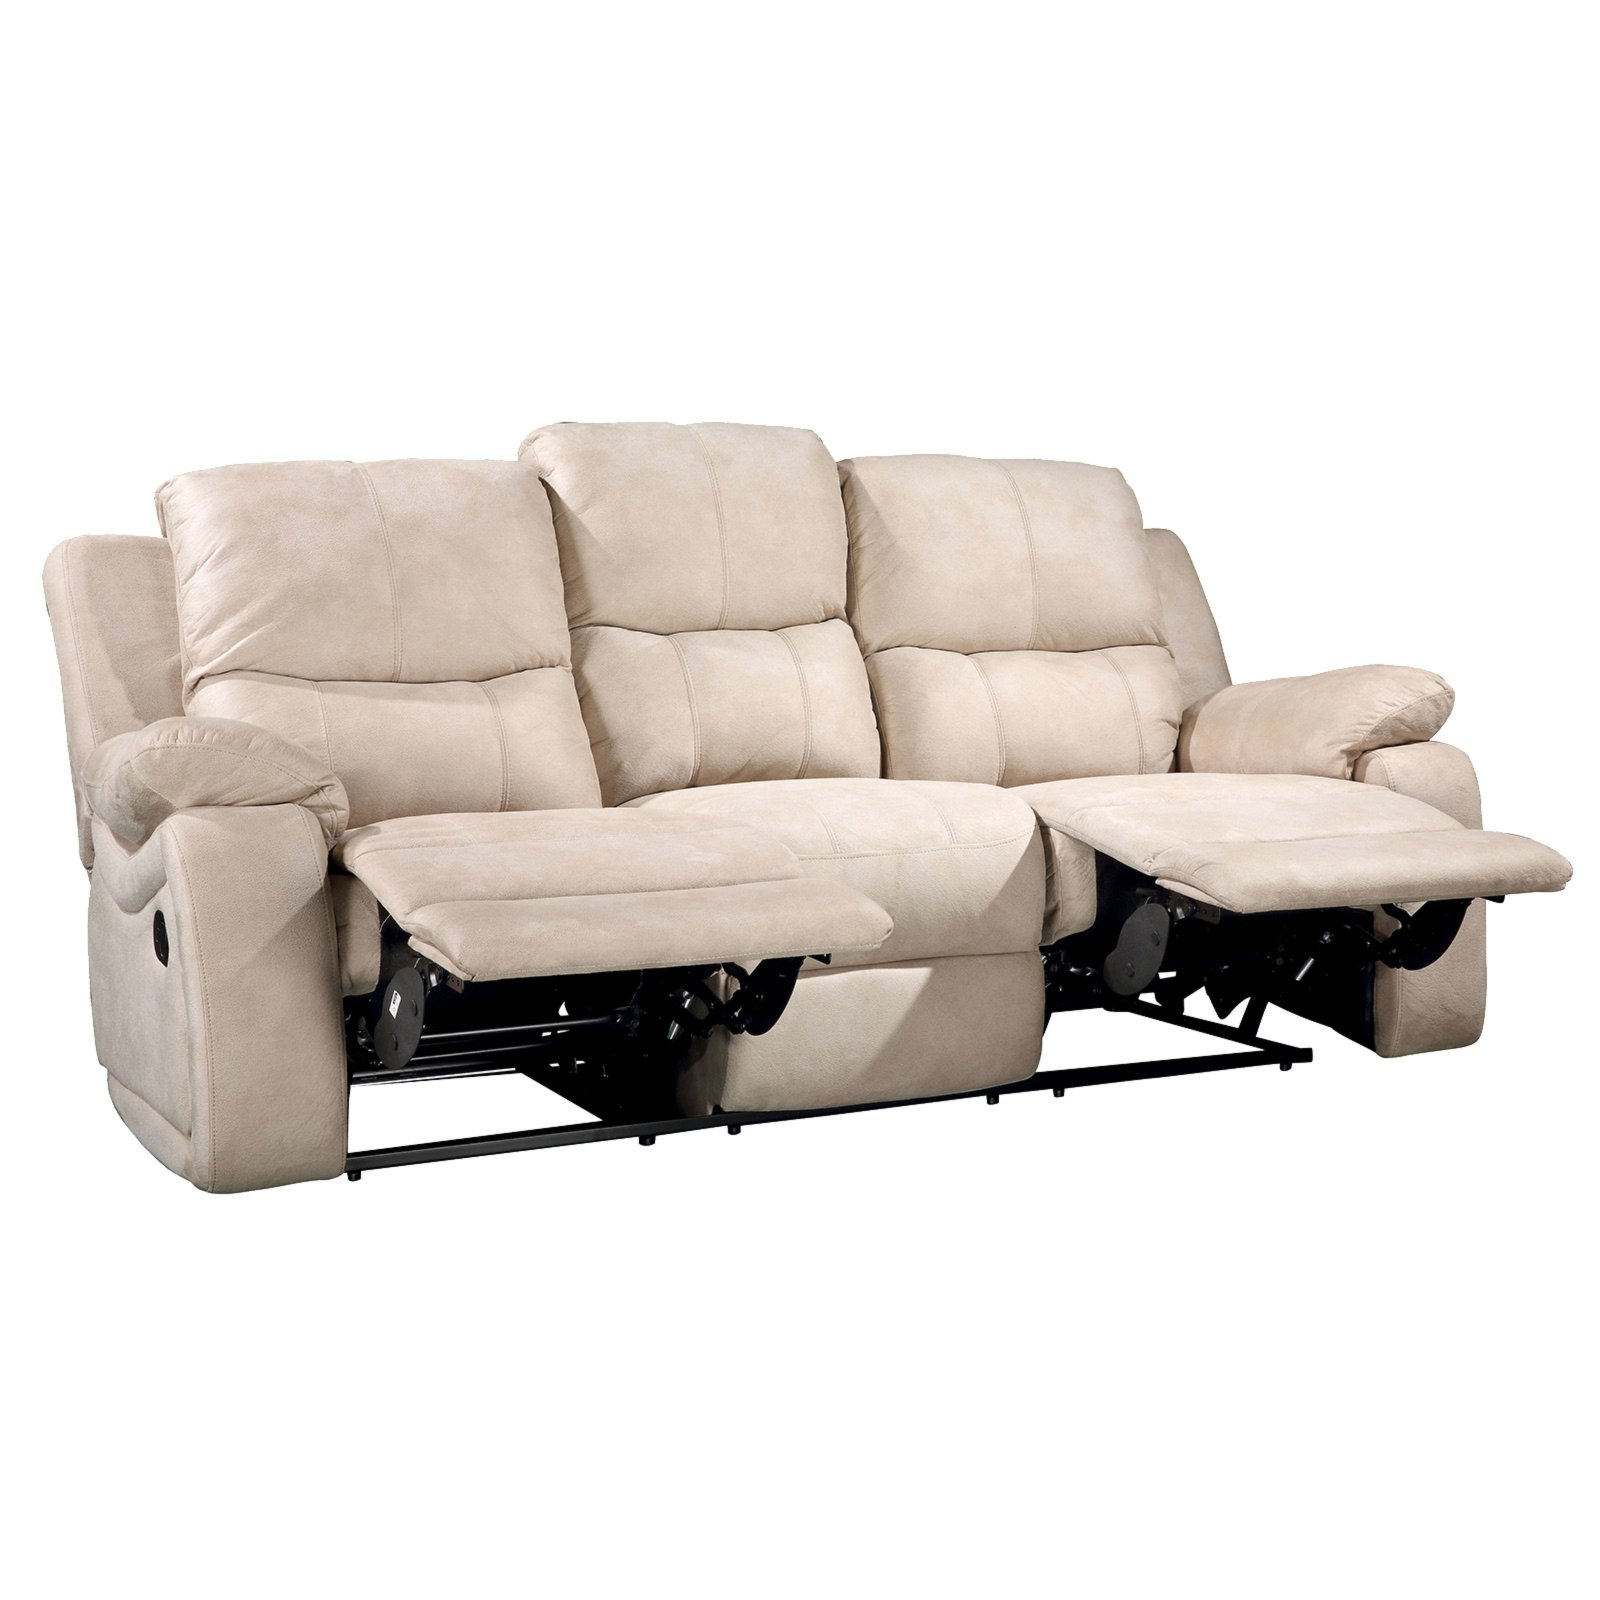 Set Rosa 2 Sofas Mit Sessel Mit Relaxfunktion